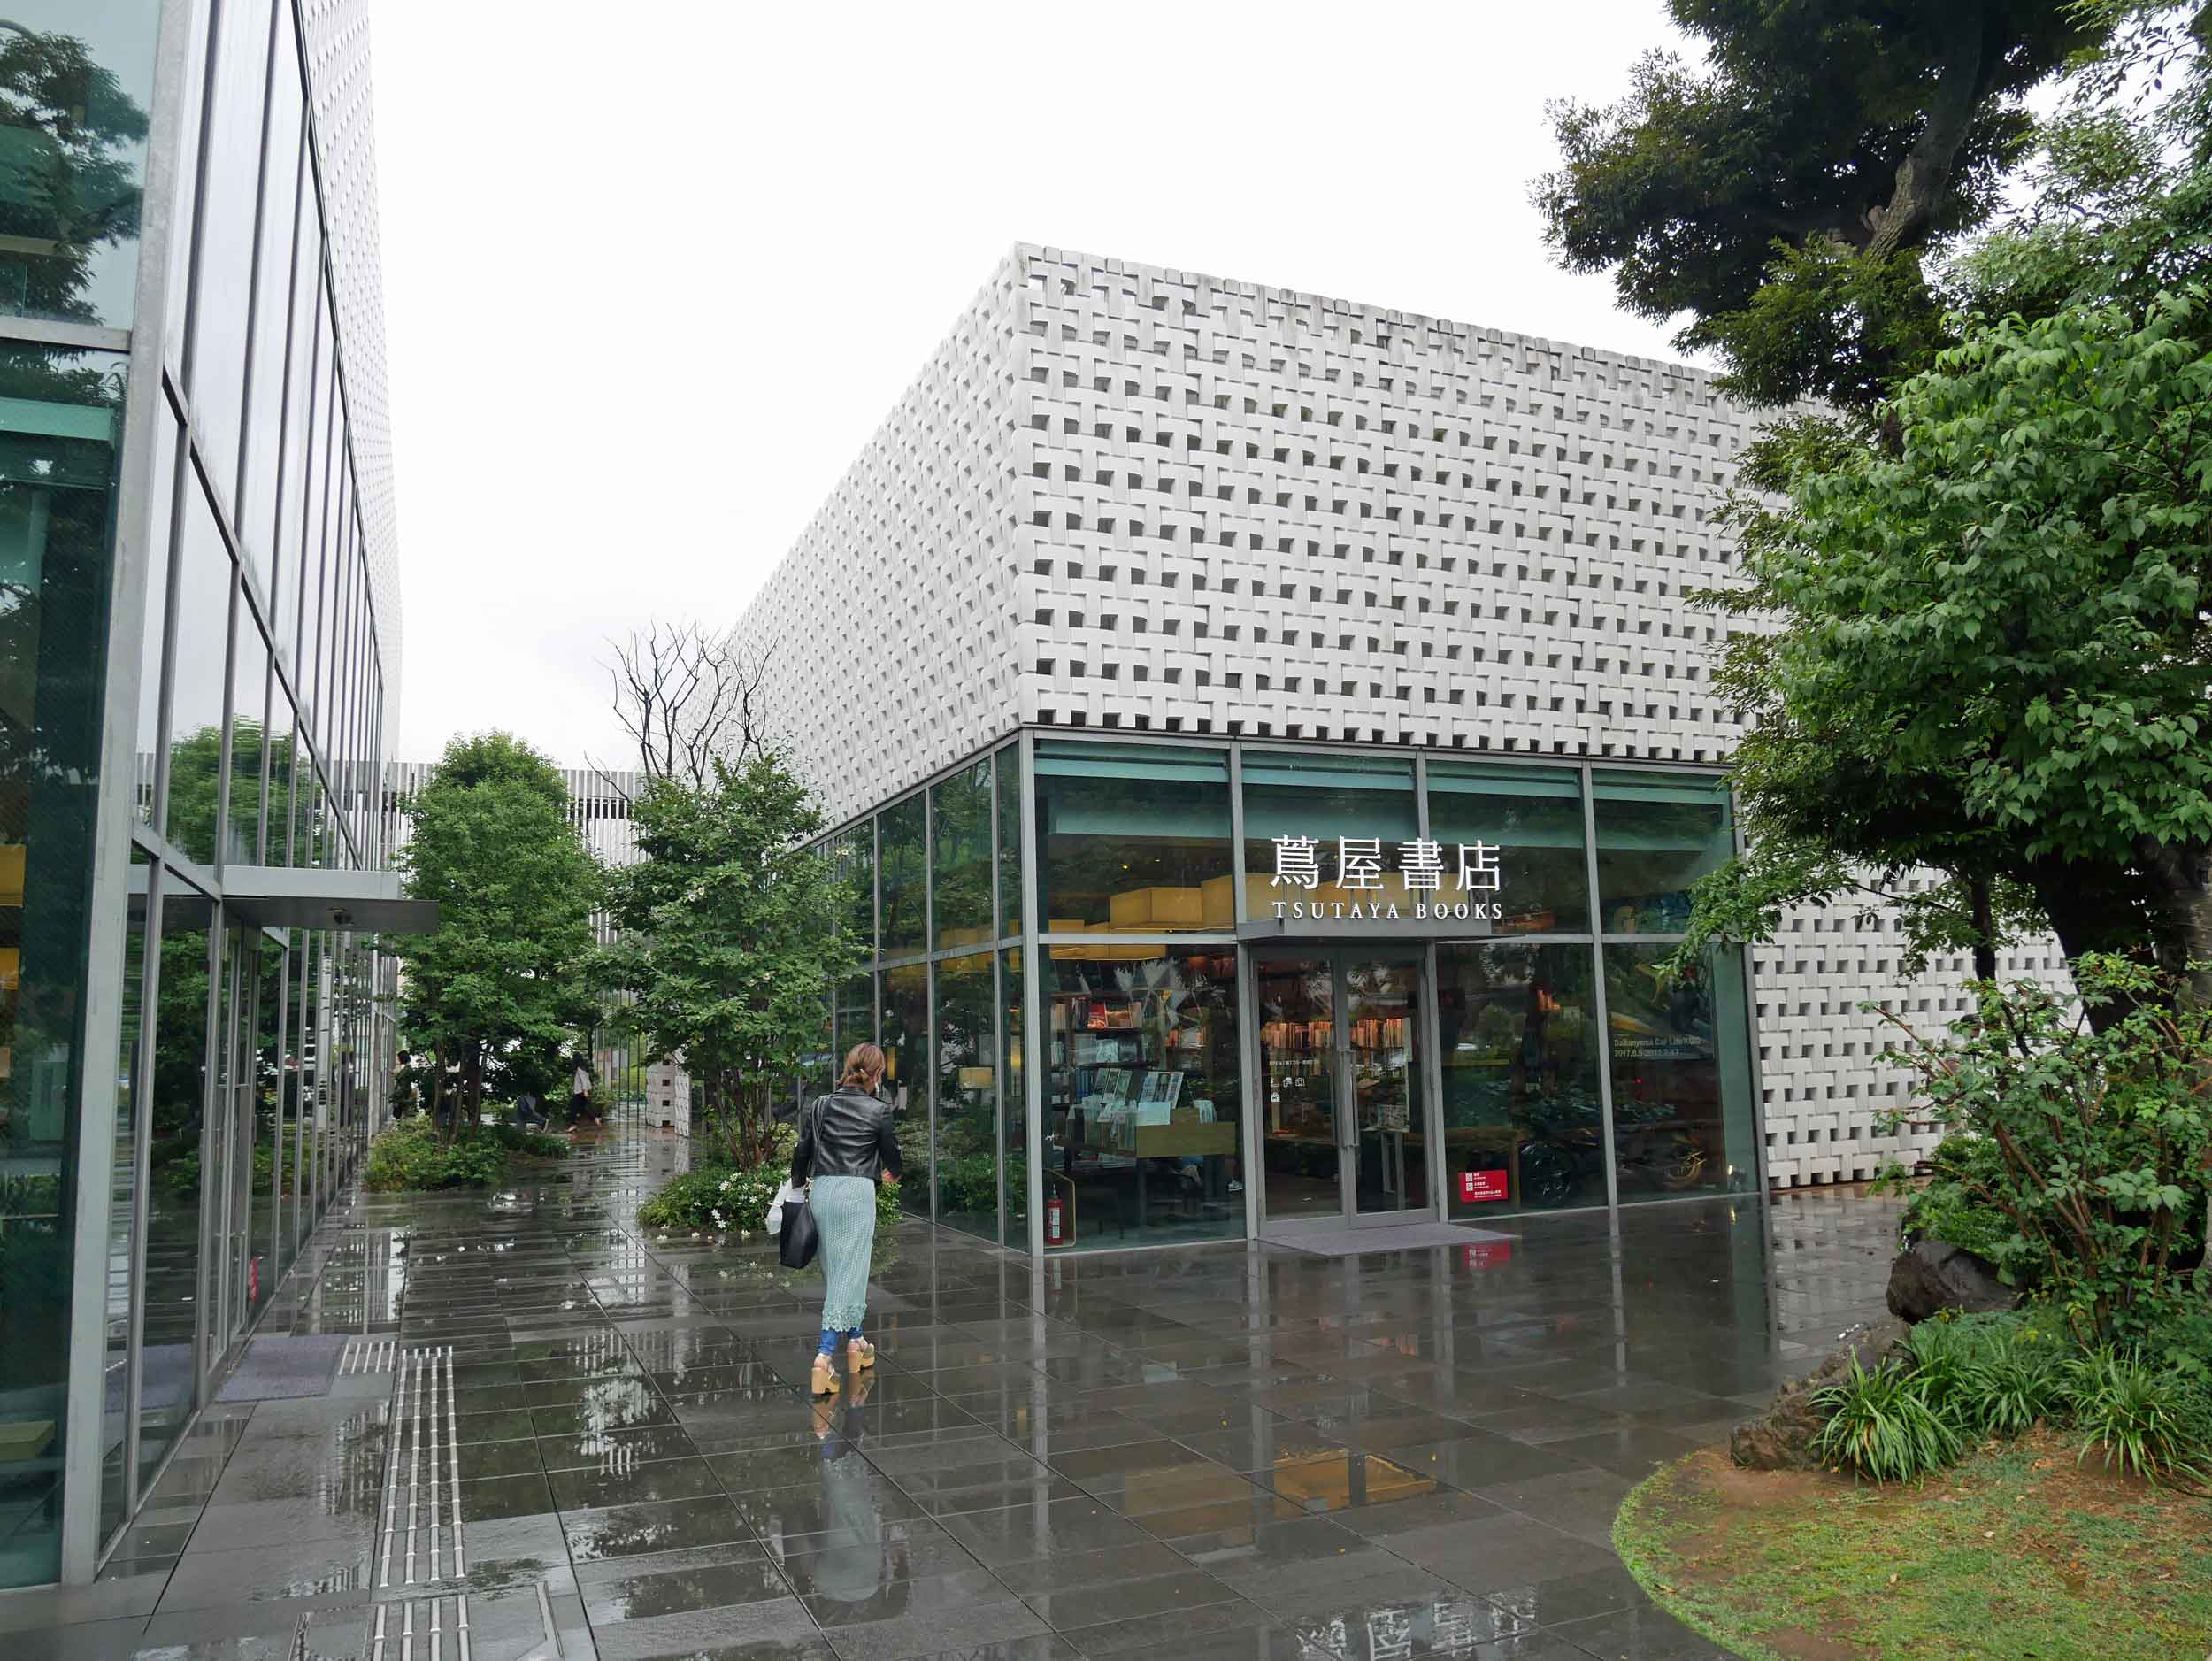 After a confusing metro ride, we finally arrived at Daikanyama T-Site, the elegant complex of books.